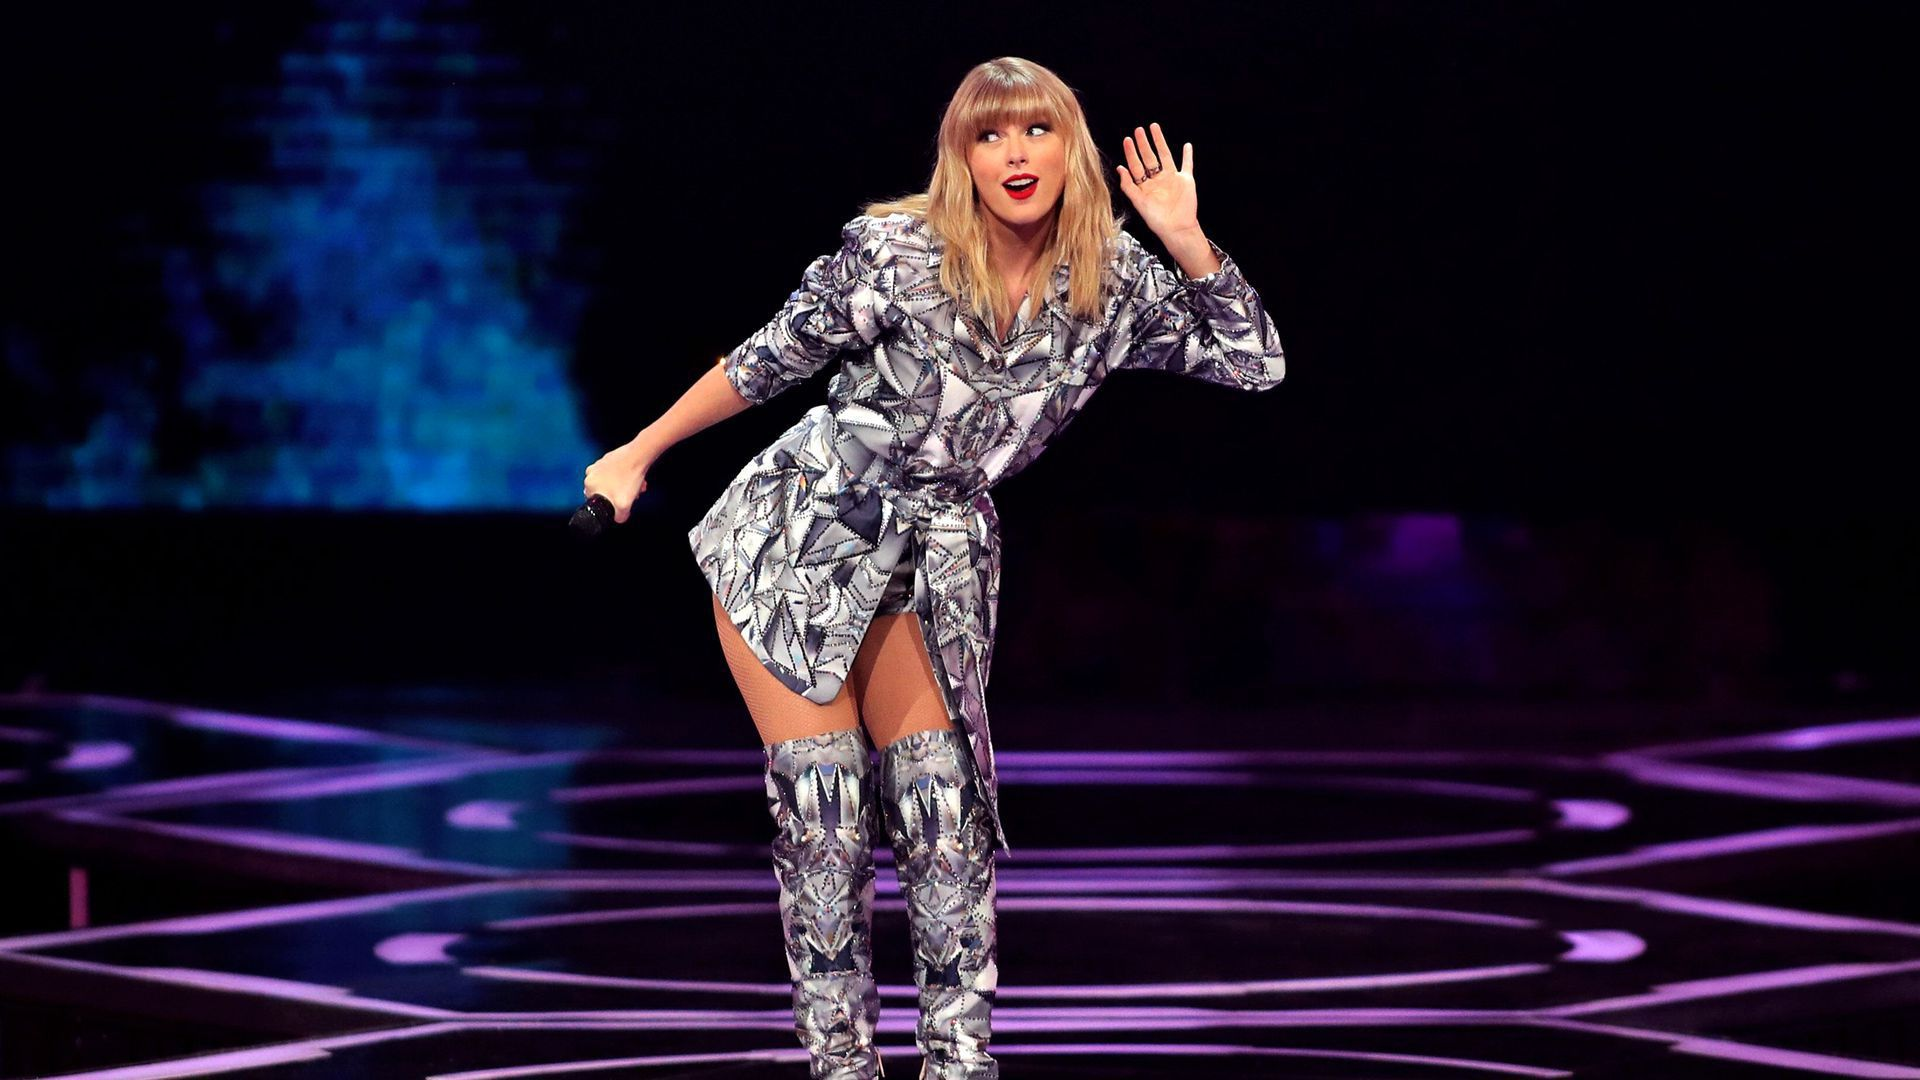 Taylor Swift crashes 2020 race with private equity broadside